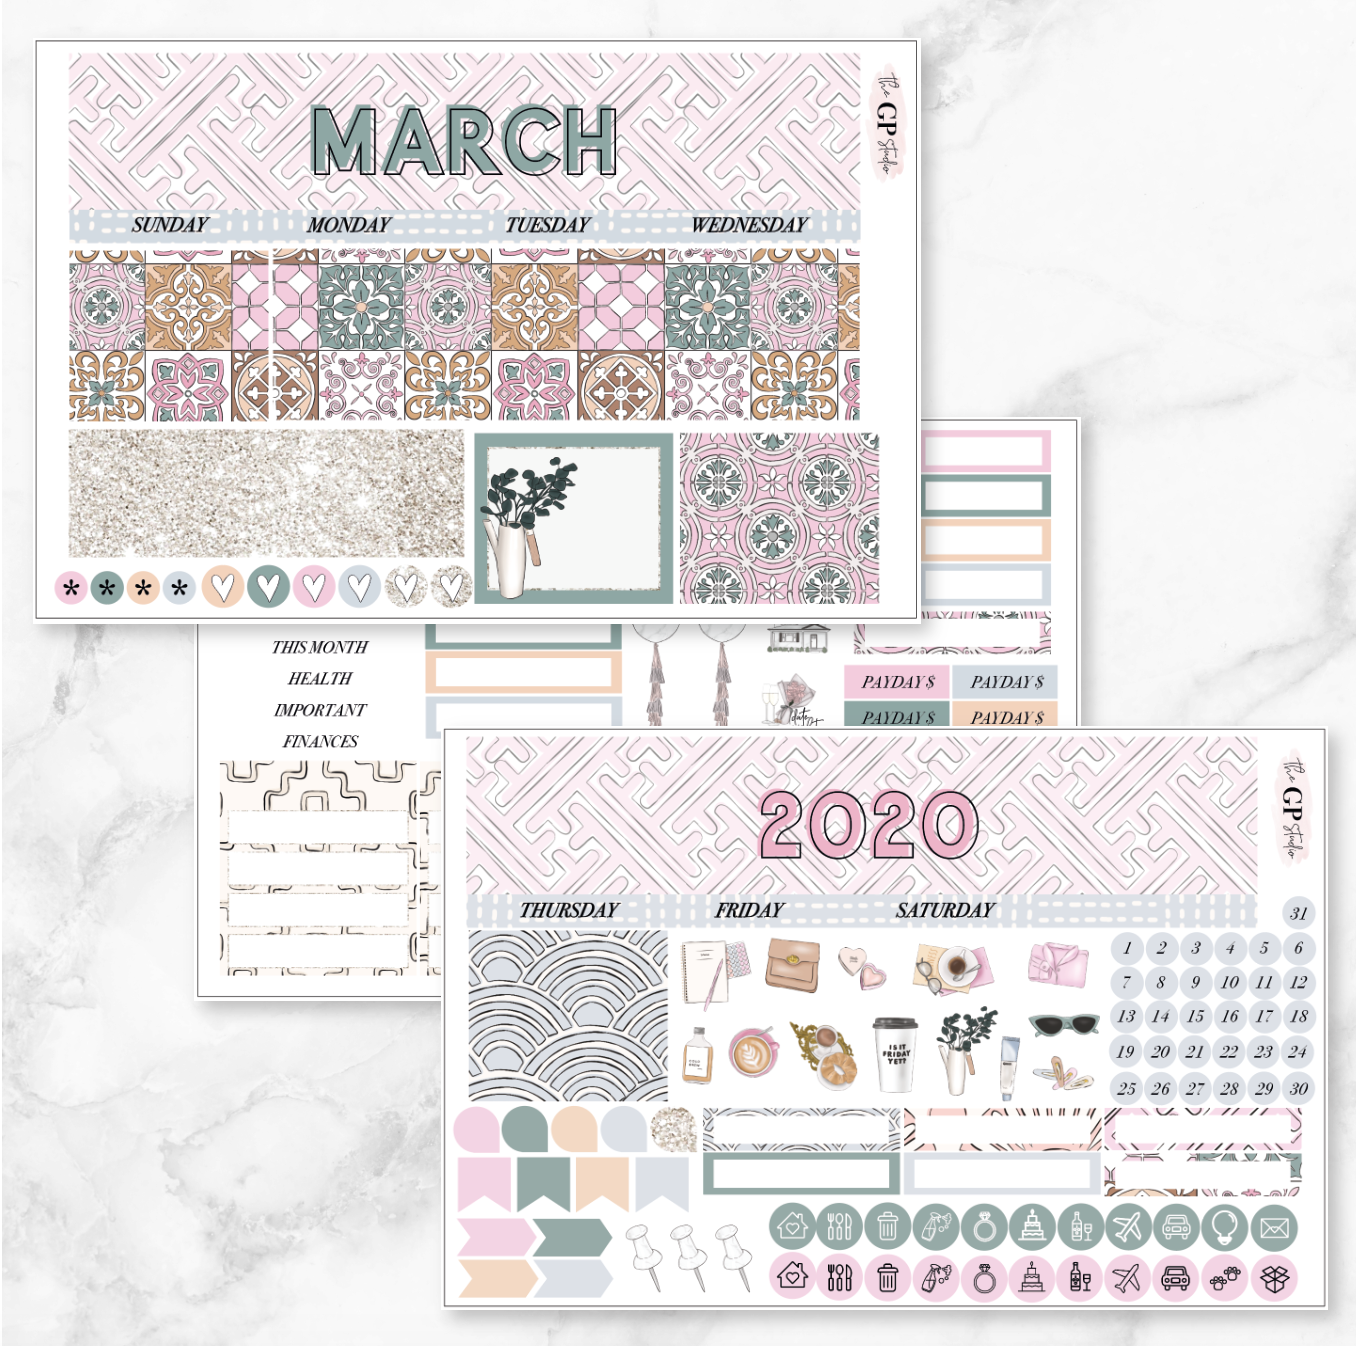 MARCH 2020 Monthly View Sticker Kit Erin Condren Size-The GP Studio